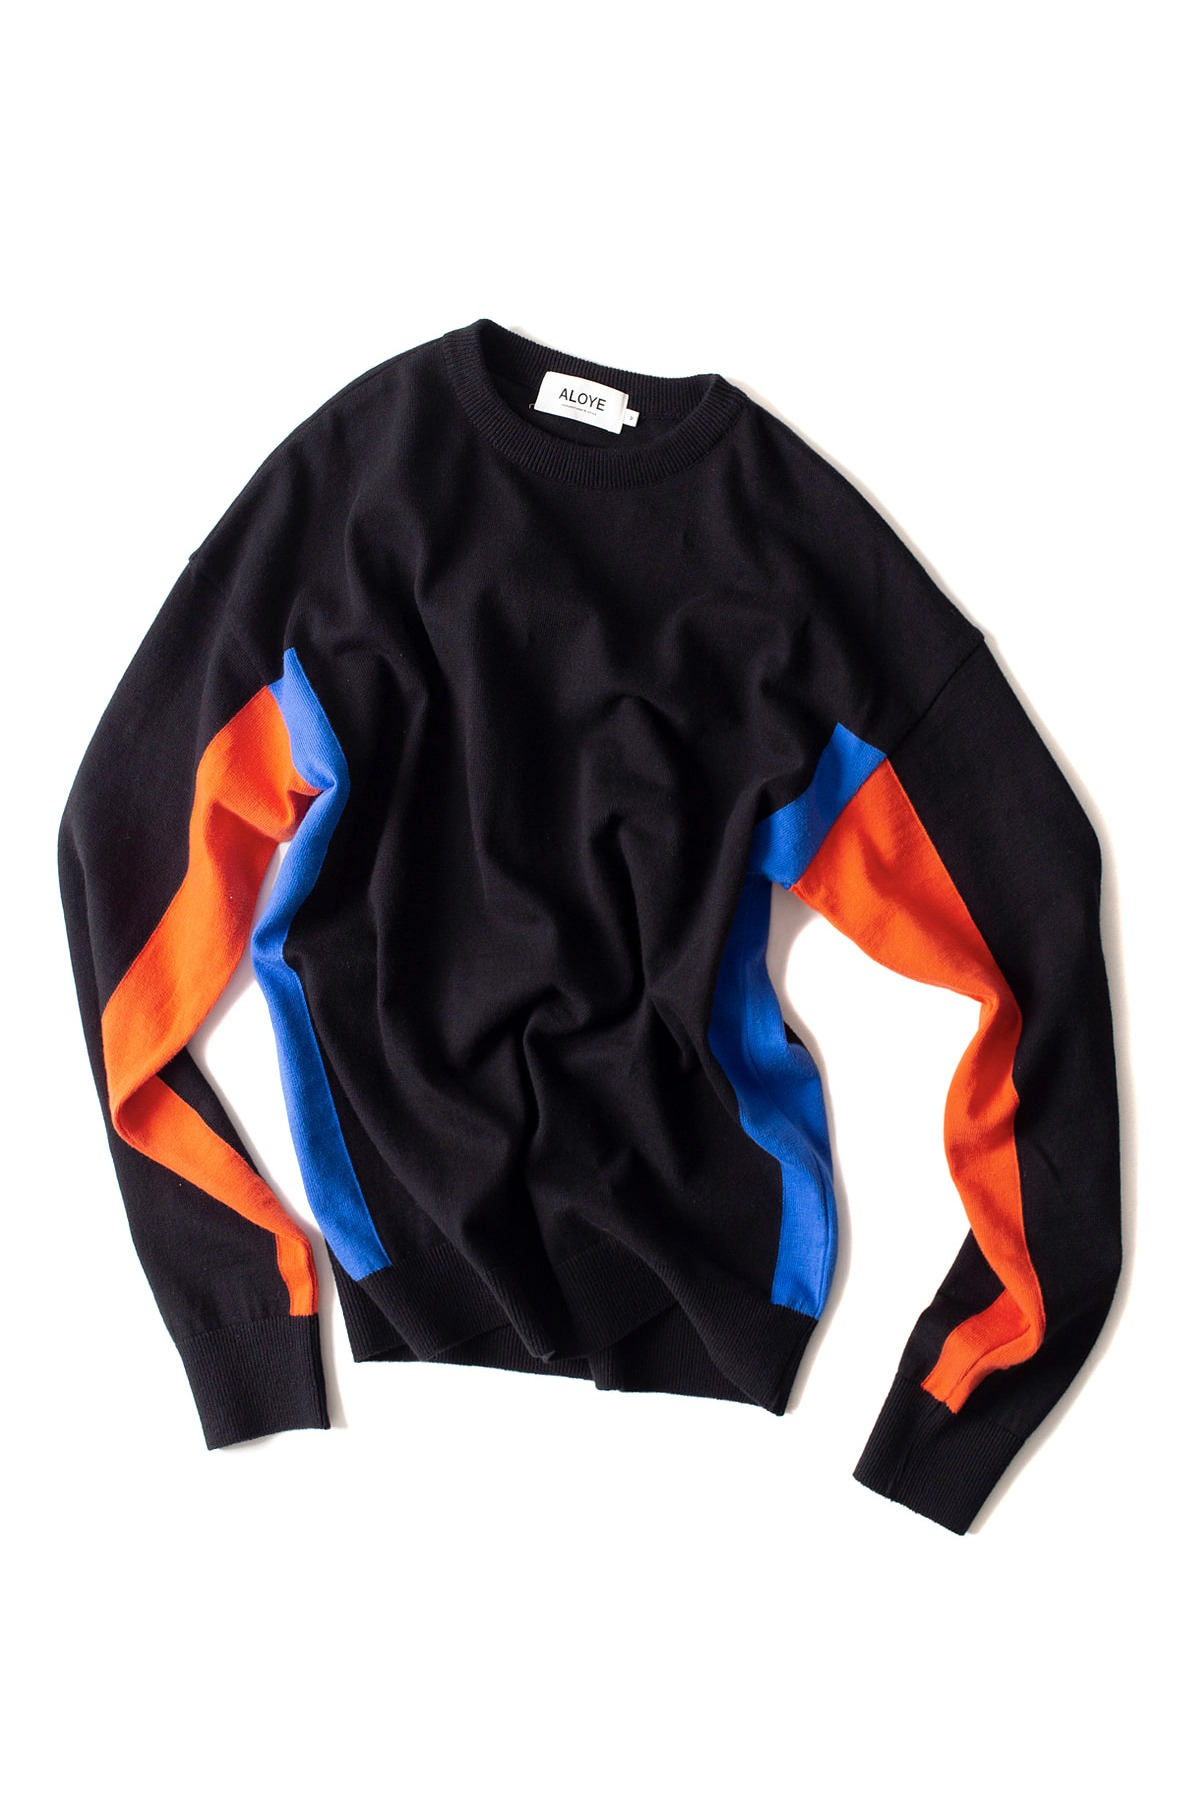 ALOYE : G.F.G.S Long Sleeve Cotton Knitted (Black)